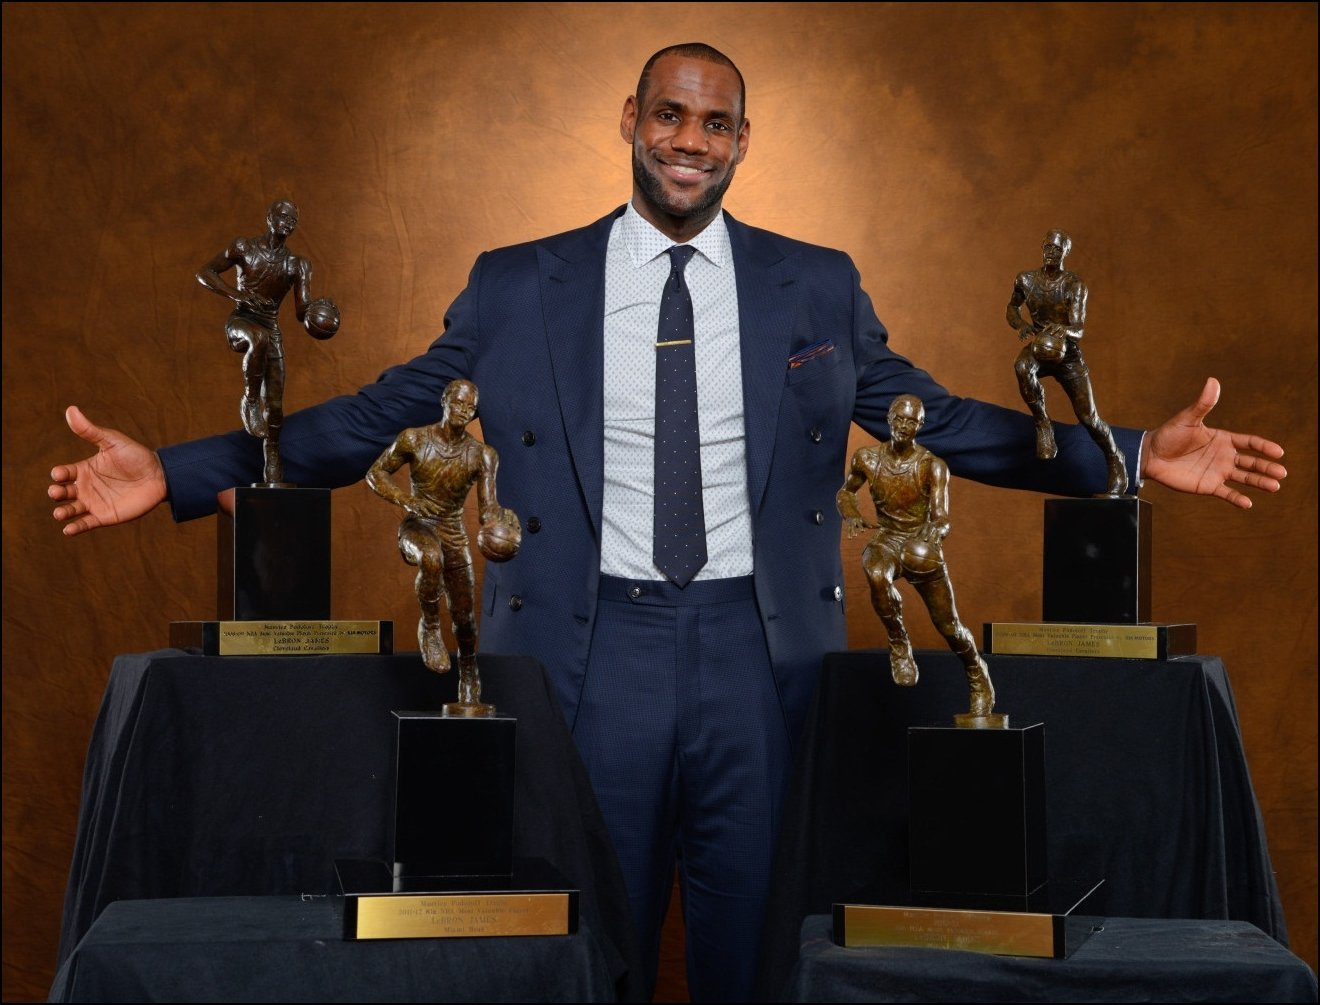 Photo Credit: Cleveland Cavaliers/NBA